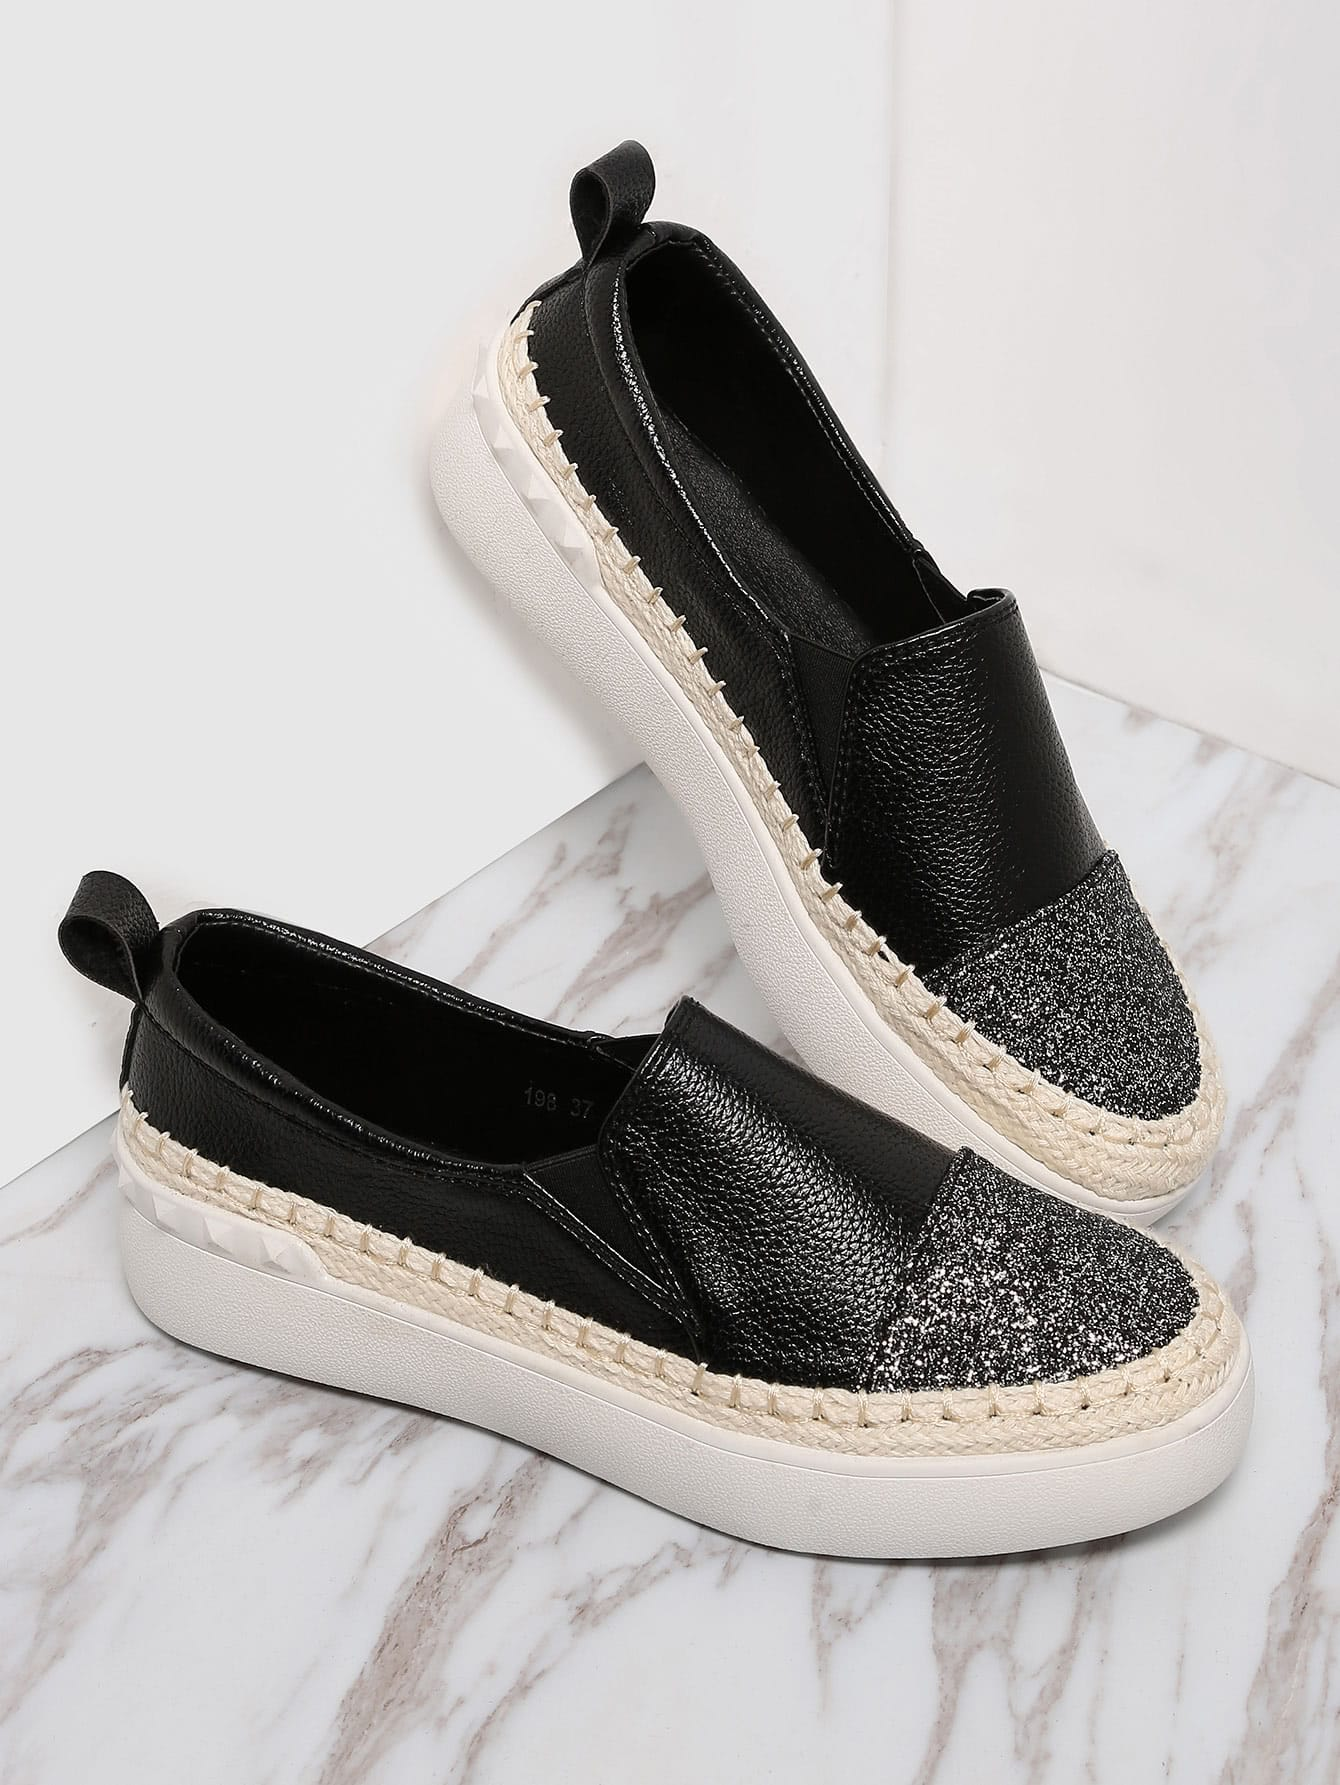 Black PU Slip On Cap Toe Espadrille FlatsBlack PU Slip On Cap Toe Espadrille Flats<br><br>color: Black<br>size: EUR36,EUR37